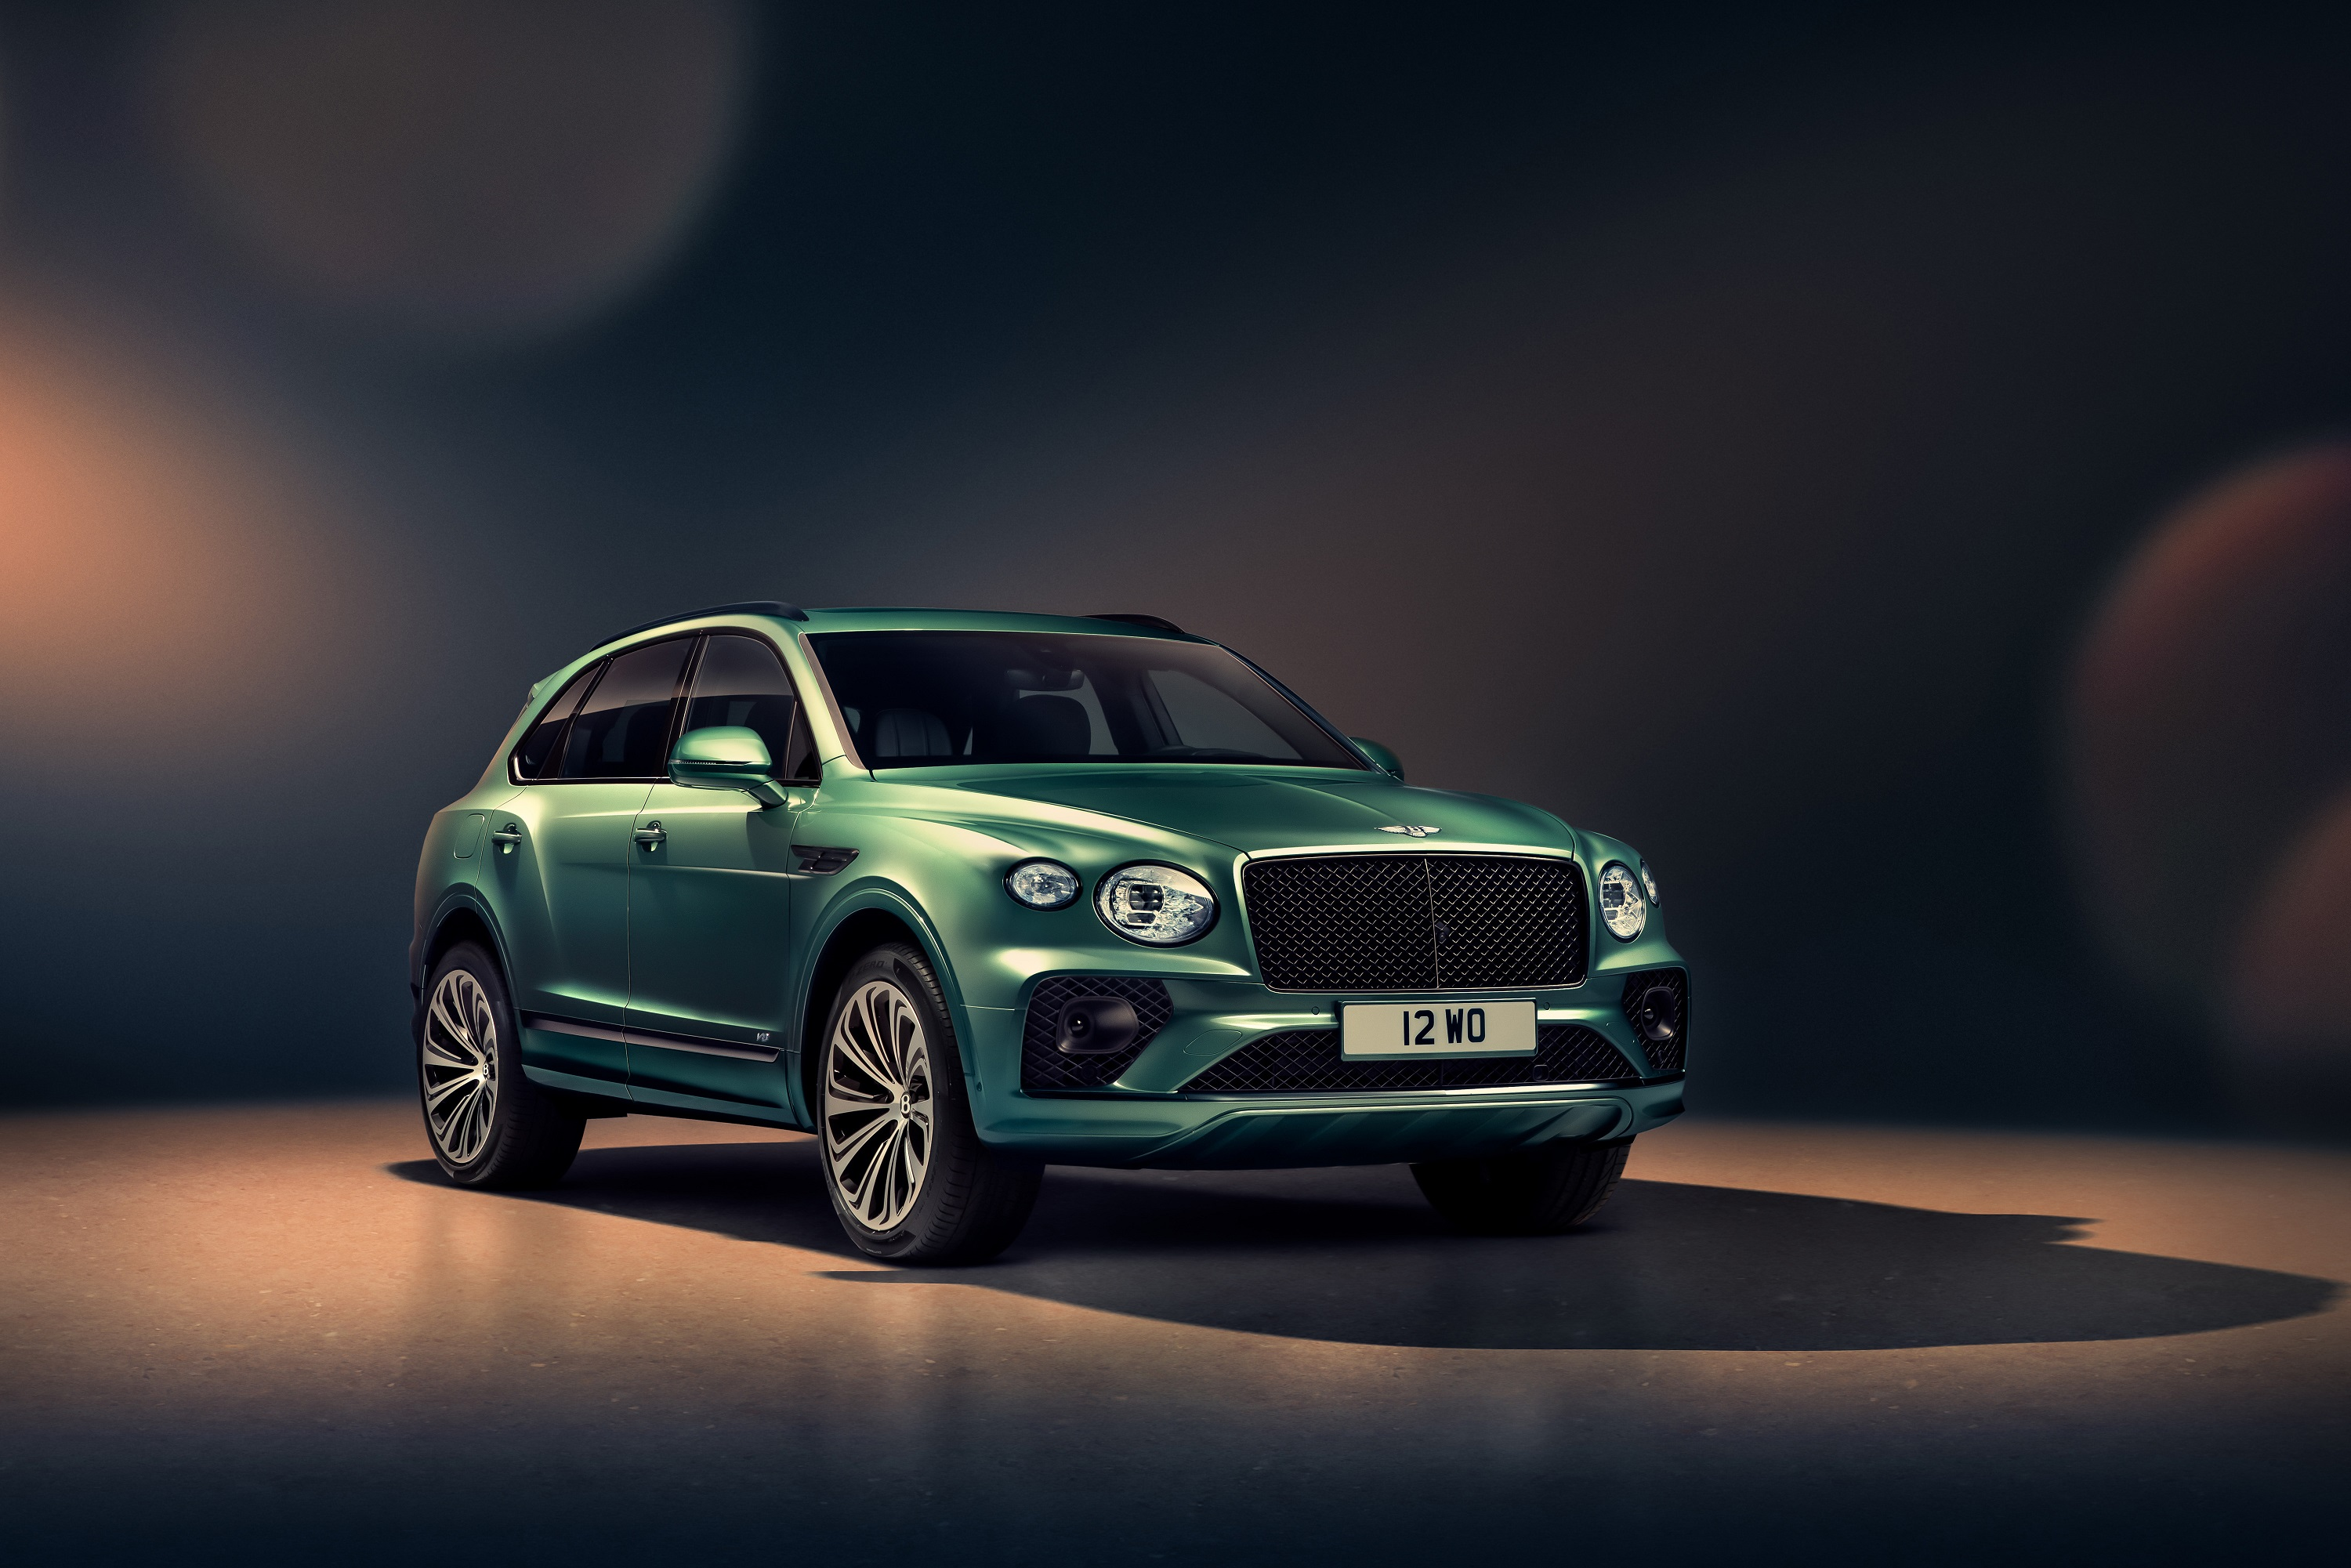 New bentley bentayga – the definitive luxury suv, launched in india